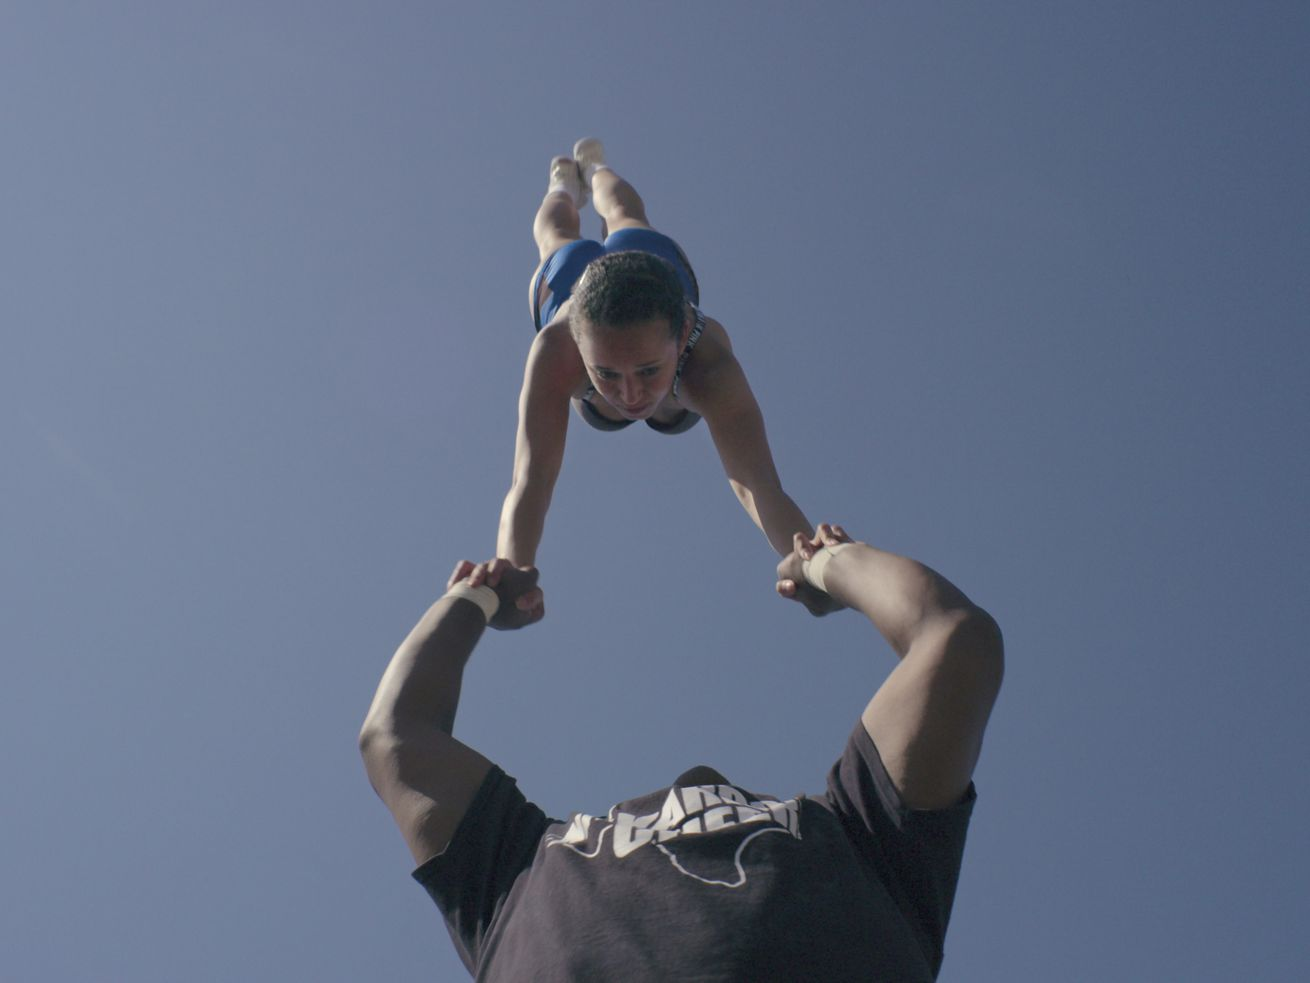 A male cheerleader holds a young woman in a handstand over his head.